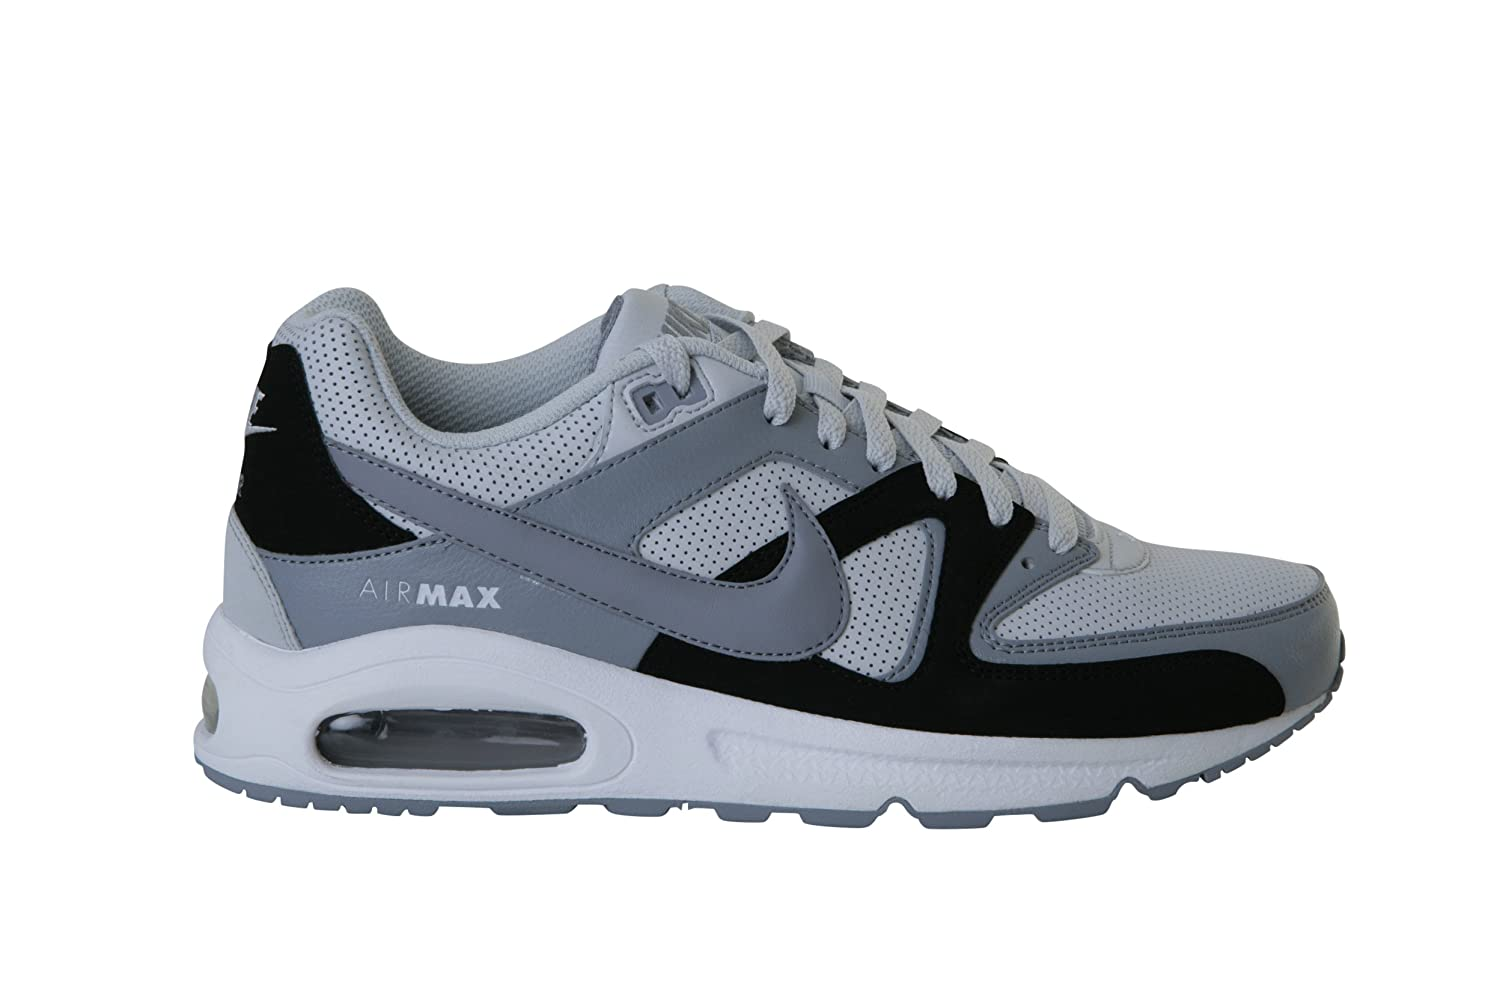 ... NIKE Air Max Command Leather 409998 099 Trainers for Men Amazon.co.uk  Shoes ... 4f6923f858a